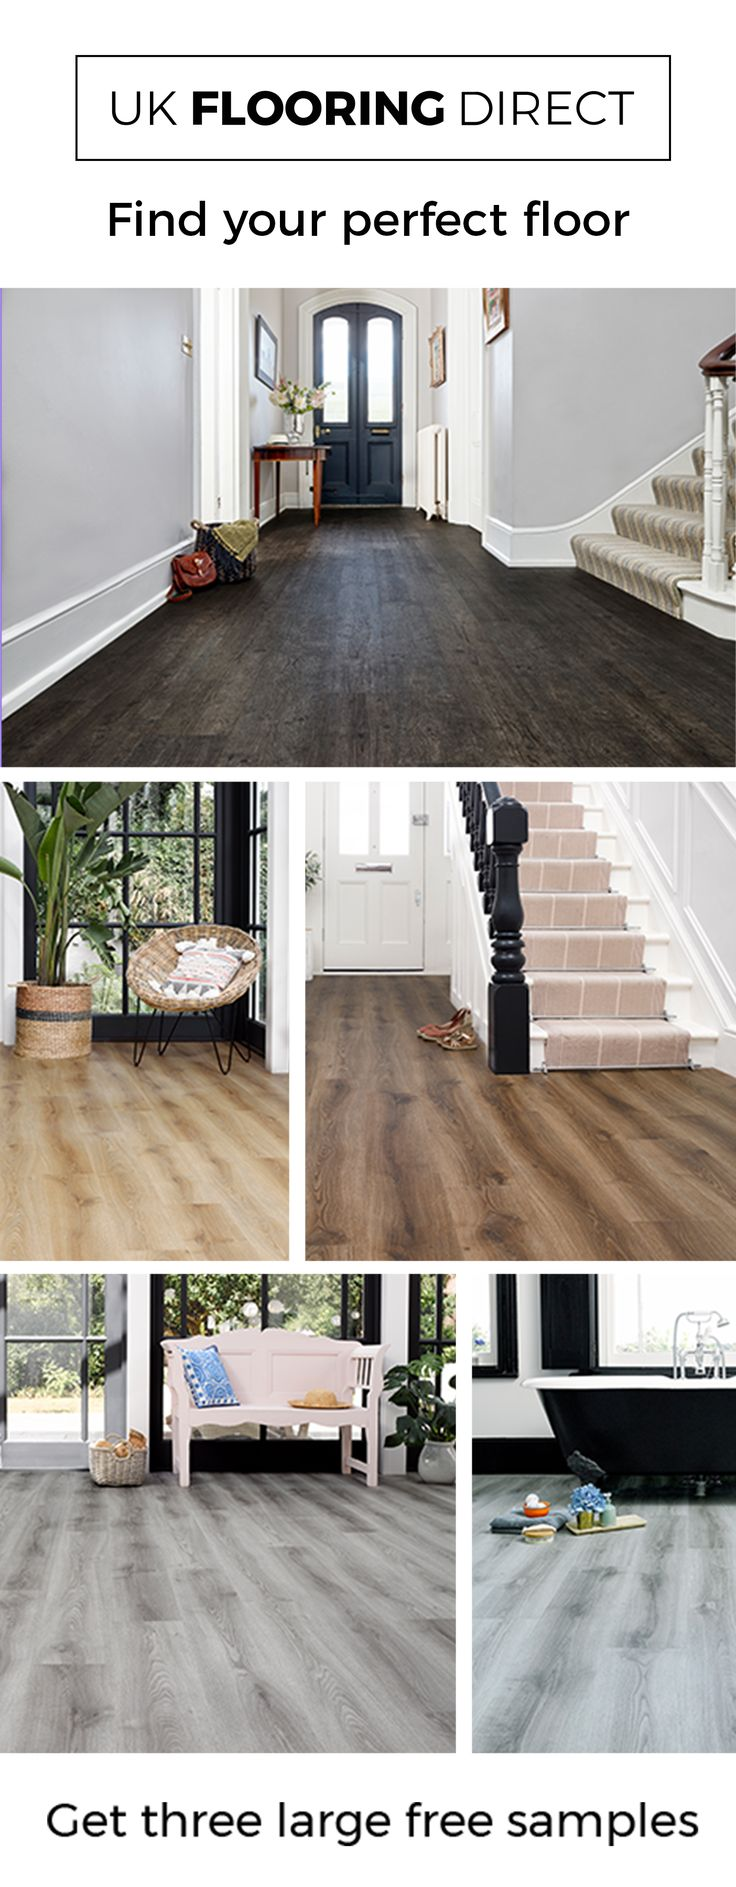 Find your floor with 3 large free samples. Luxury vinyl